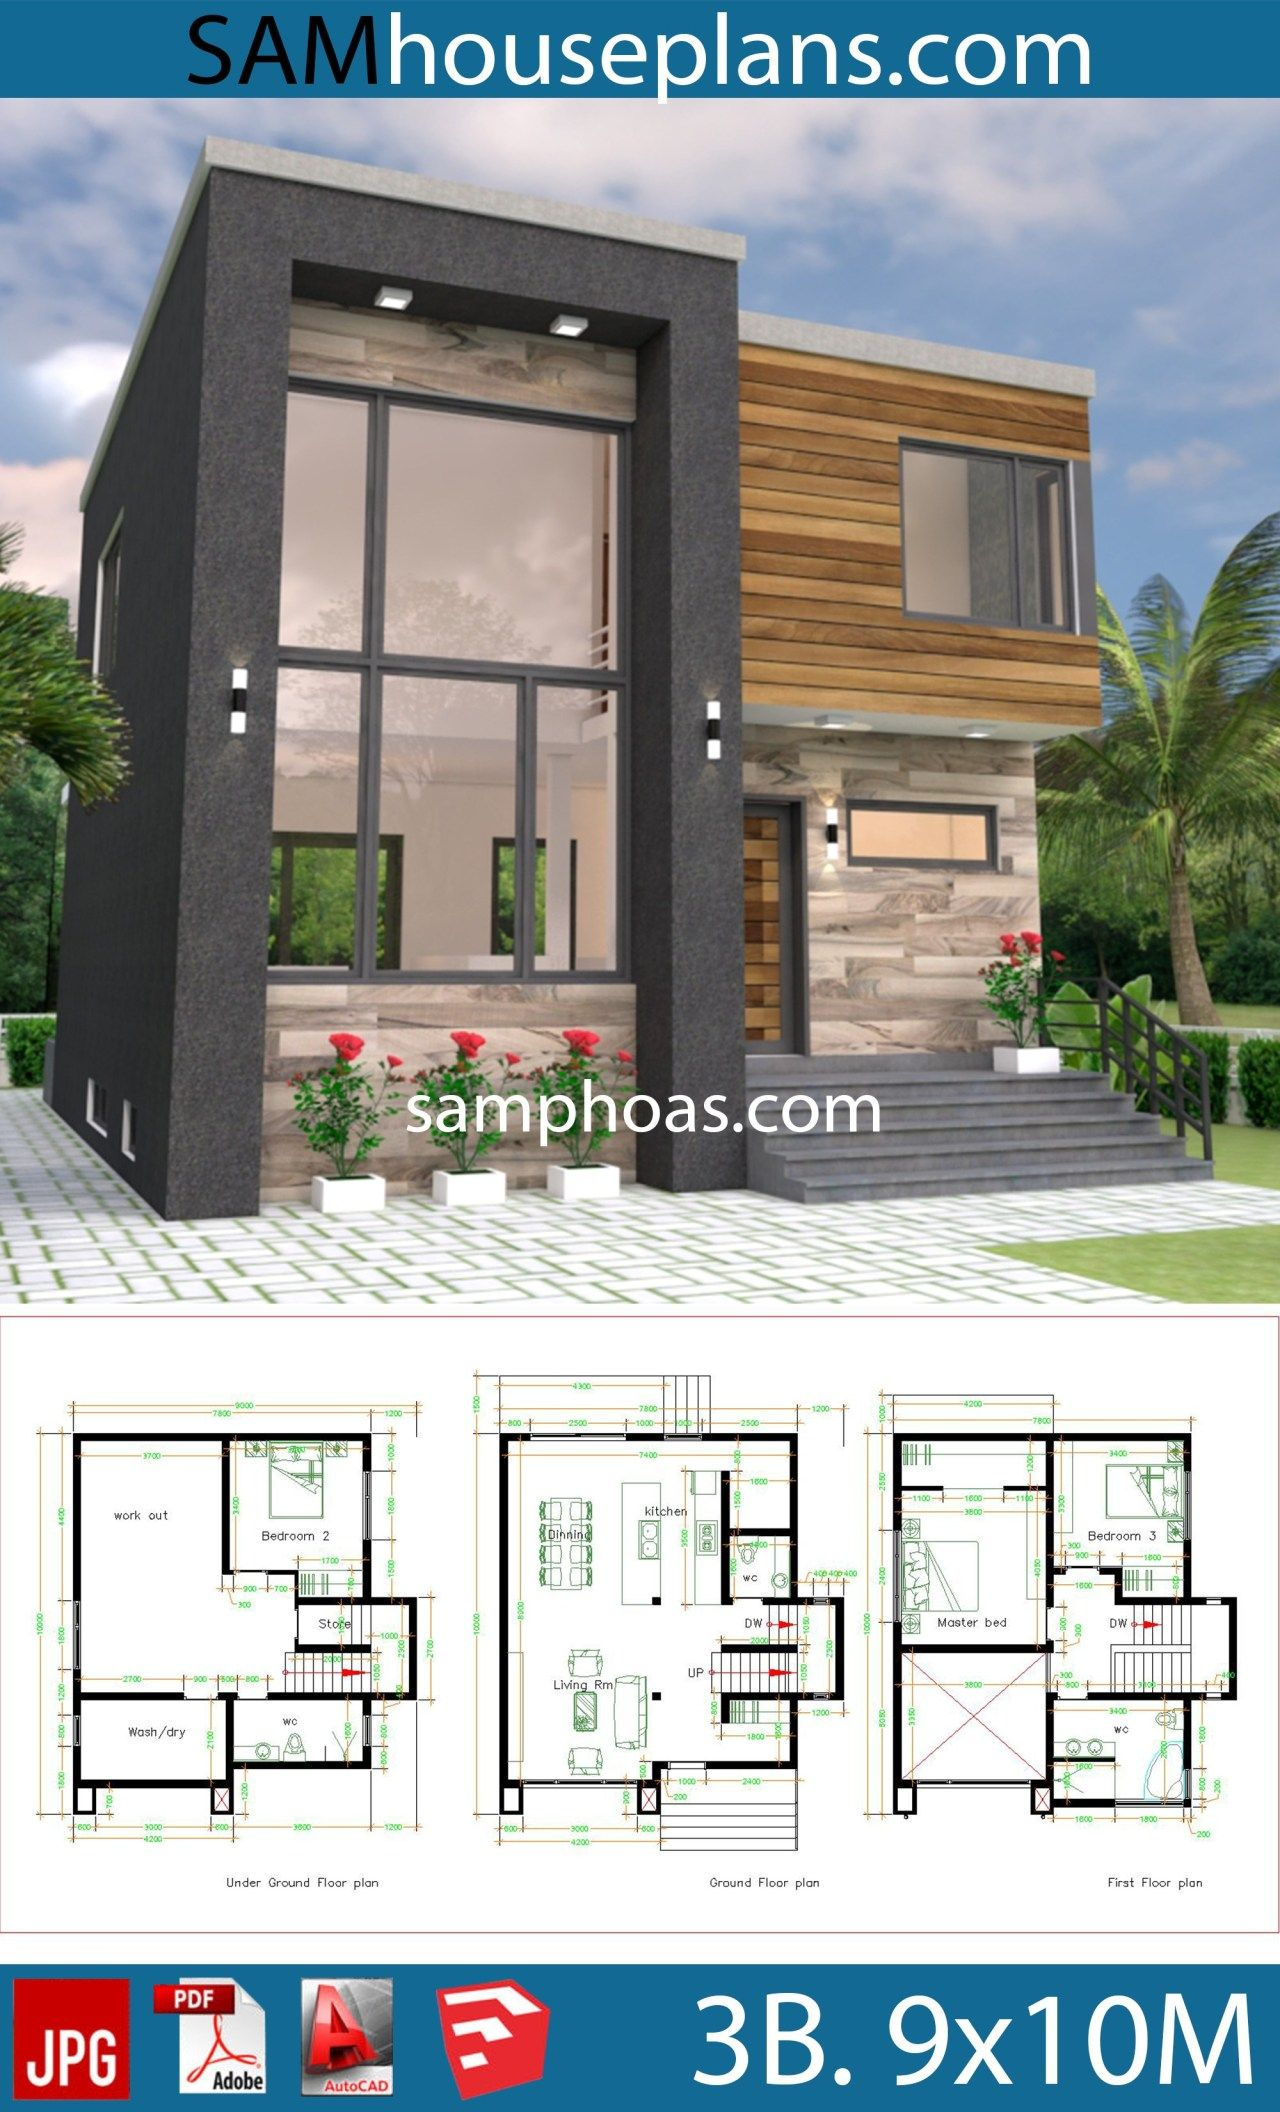 House Plans 9x10 With 3 Bedrooms Samphoas Plan Small Modern House Plans Architectural House Plans Sims House Plans